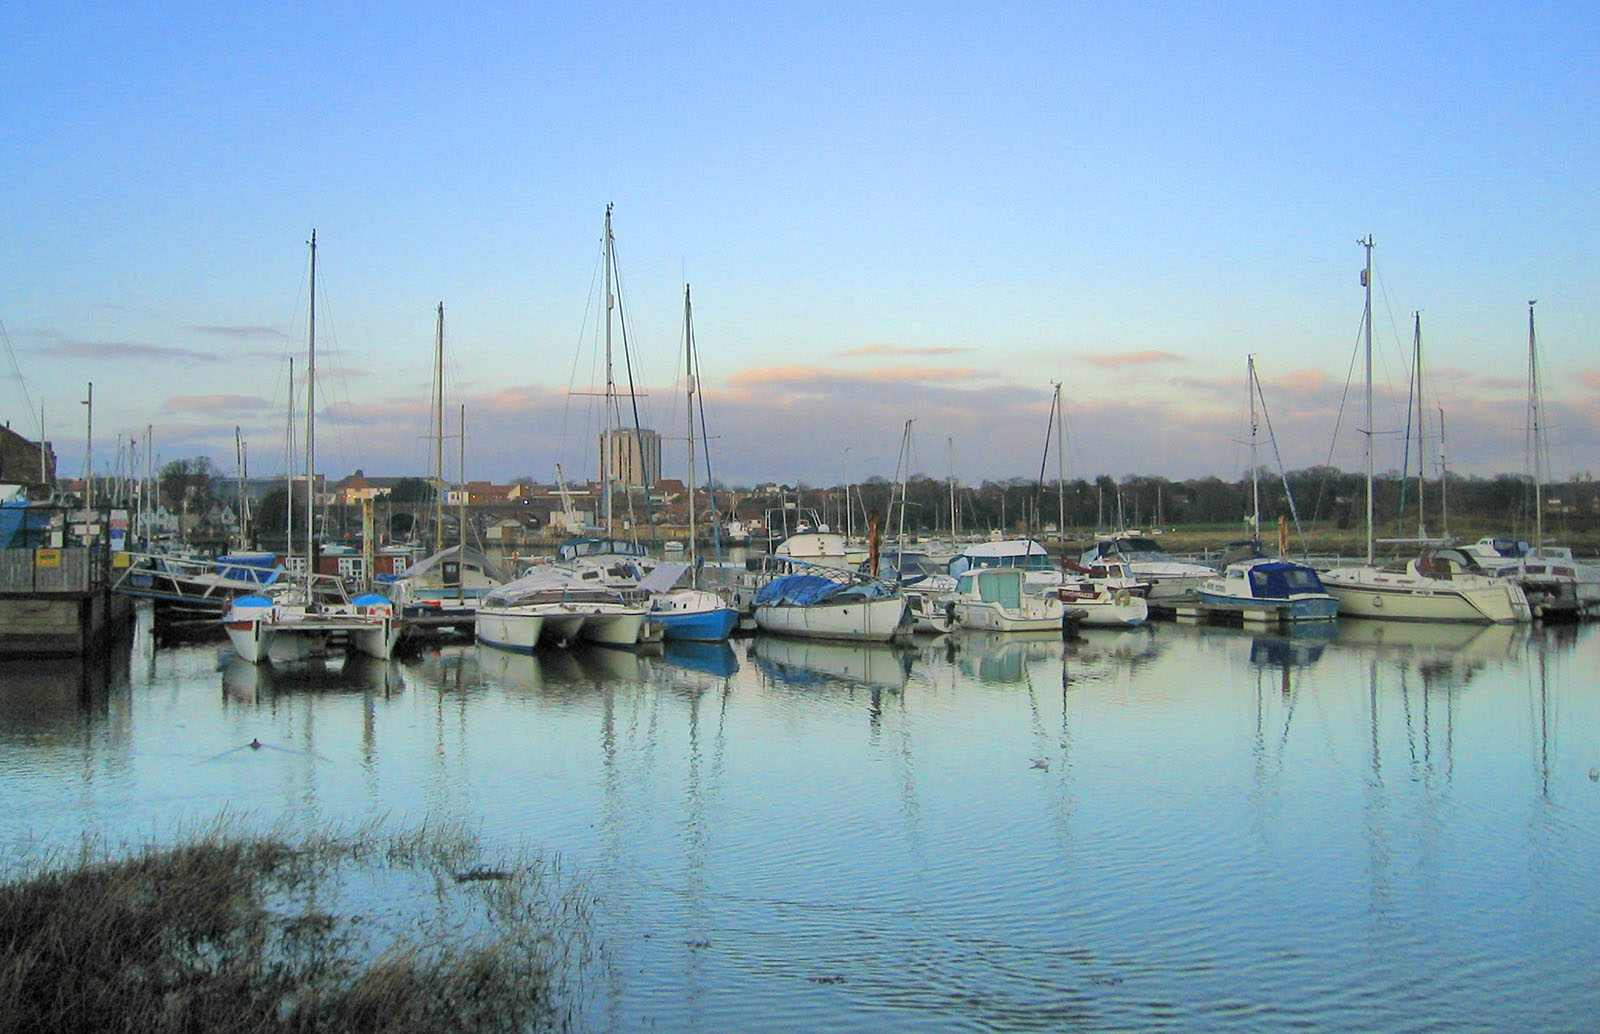 Fareham Creek in Hampshire.